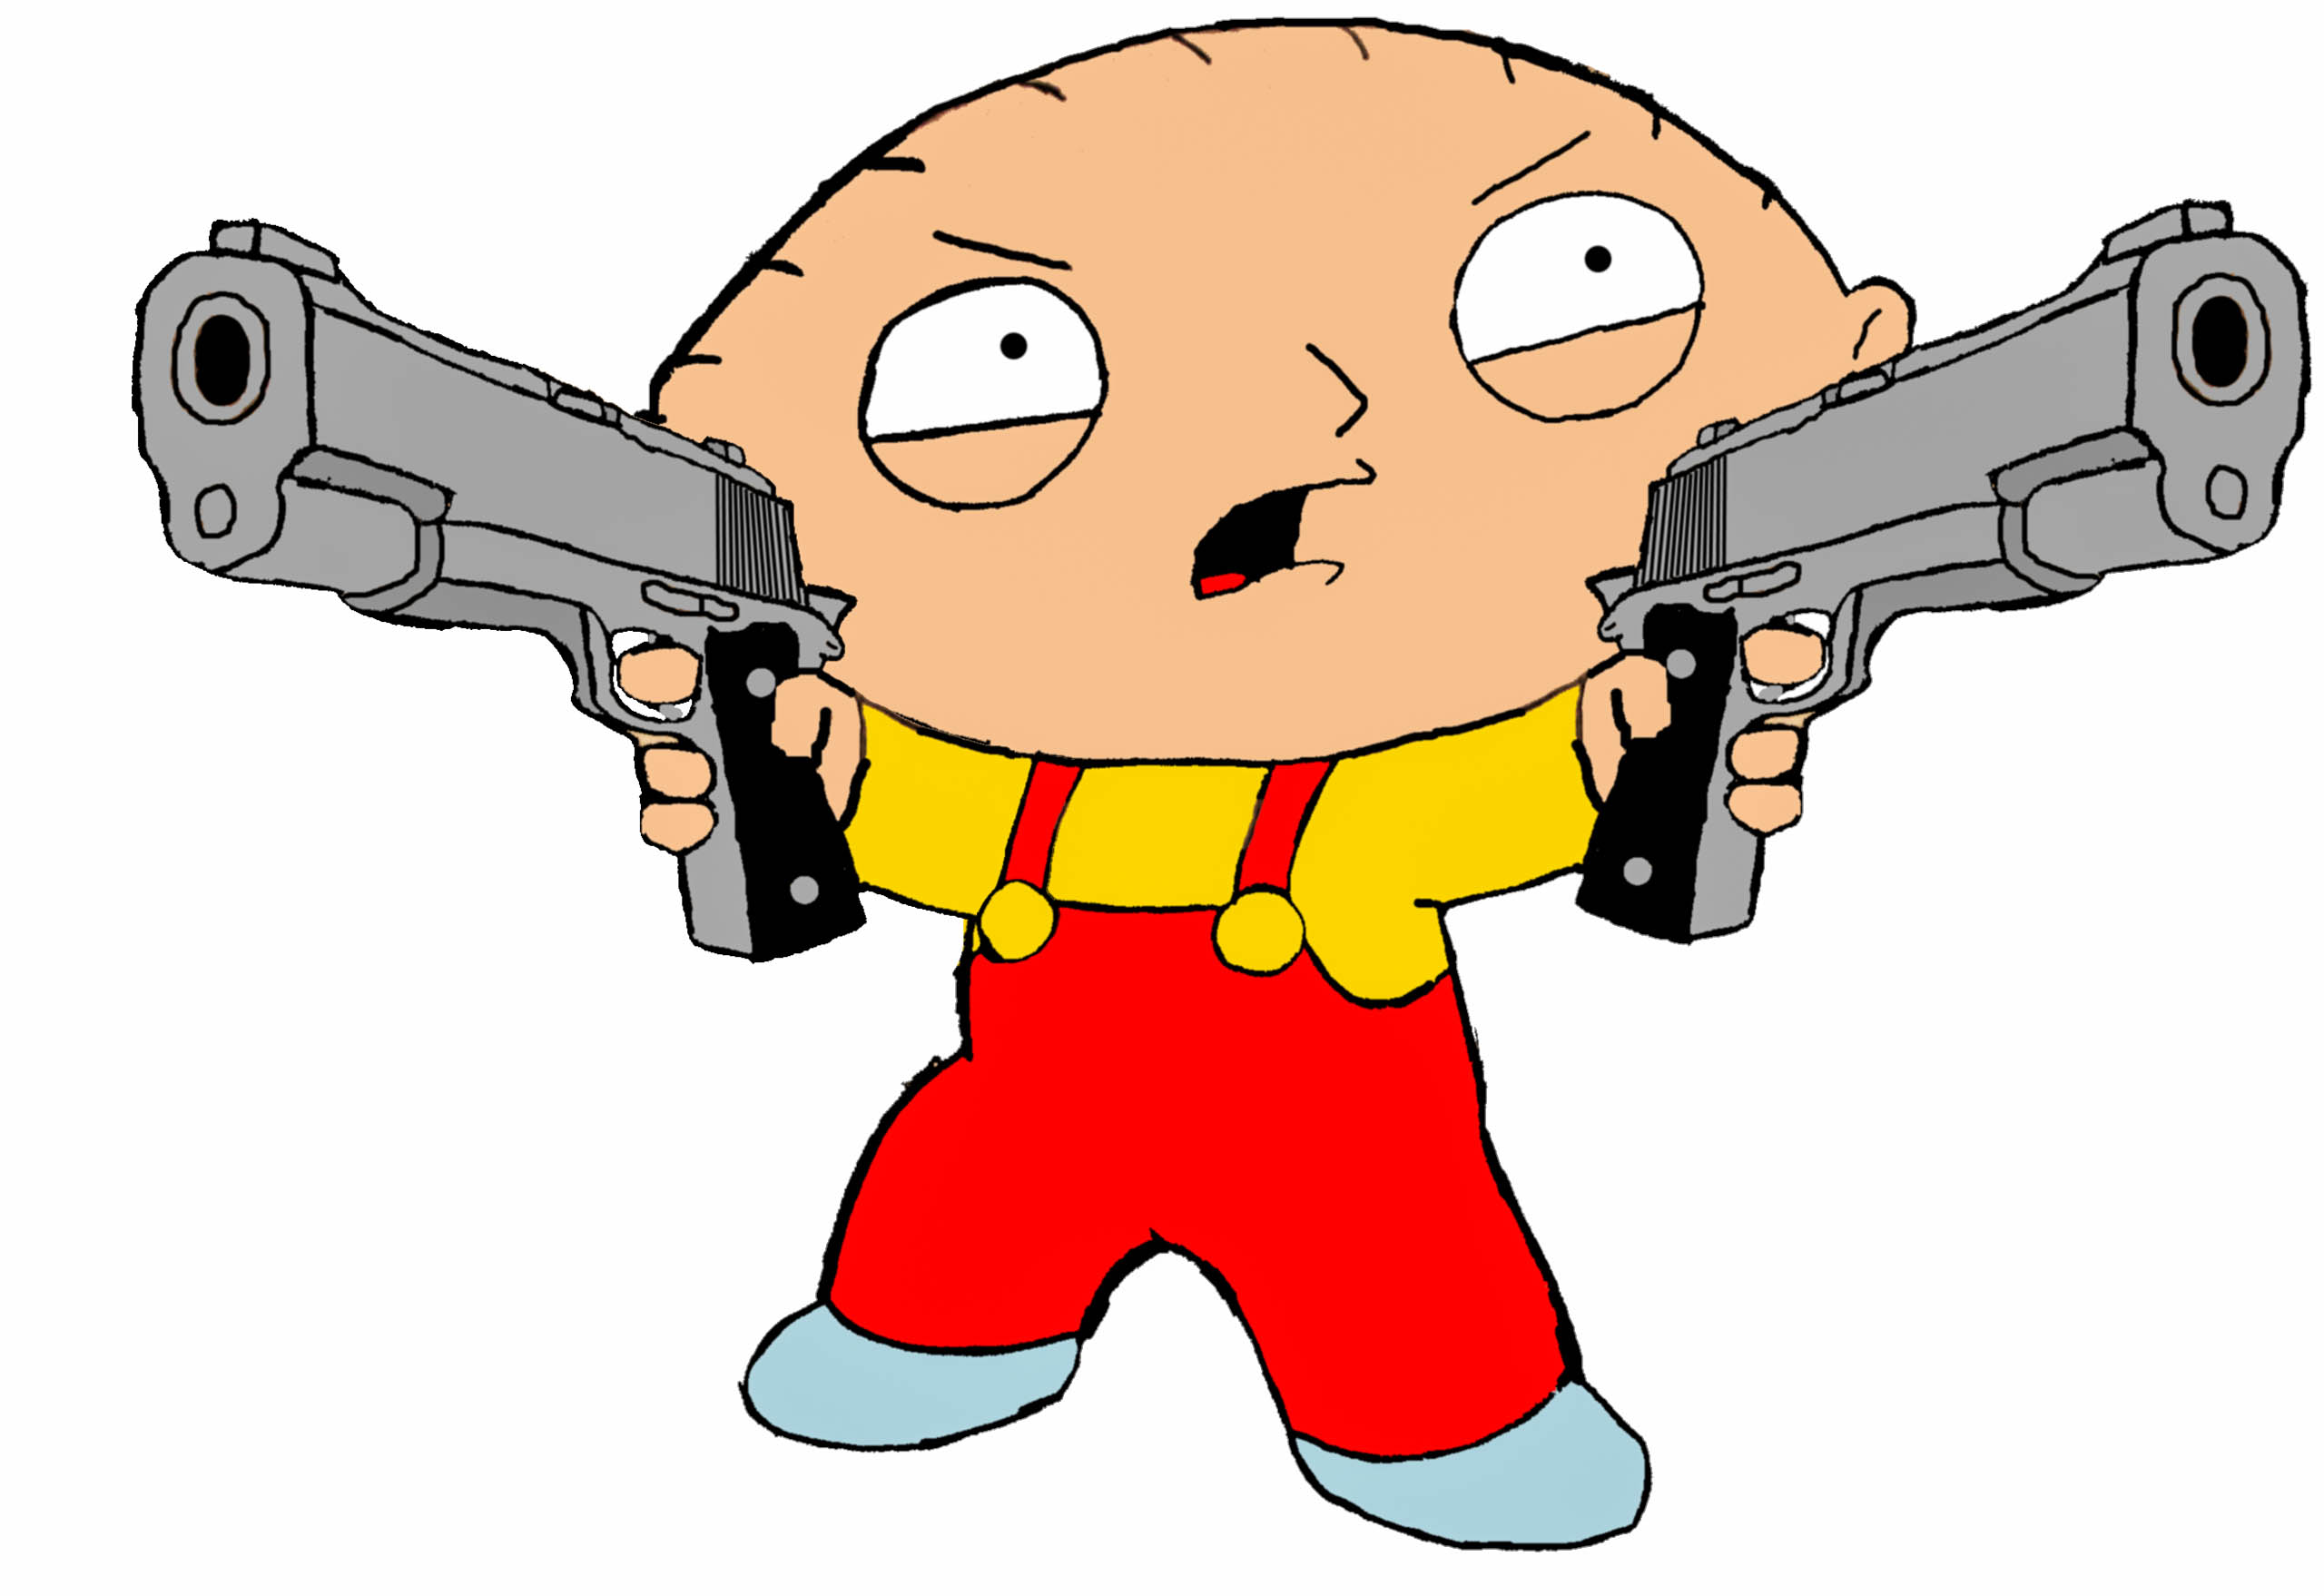 Family Guy Hd Wallpapers 2015 High Definition - All Hd -4787